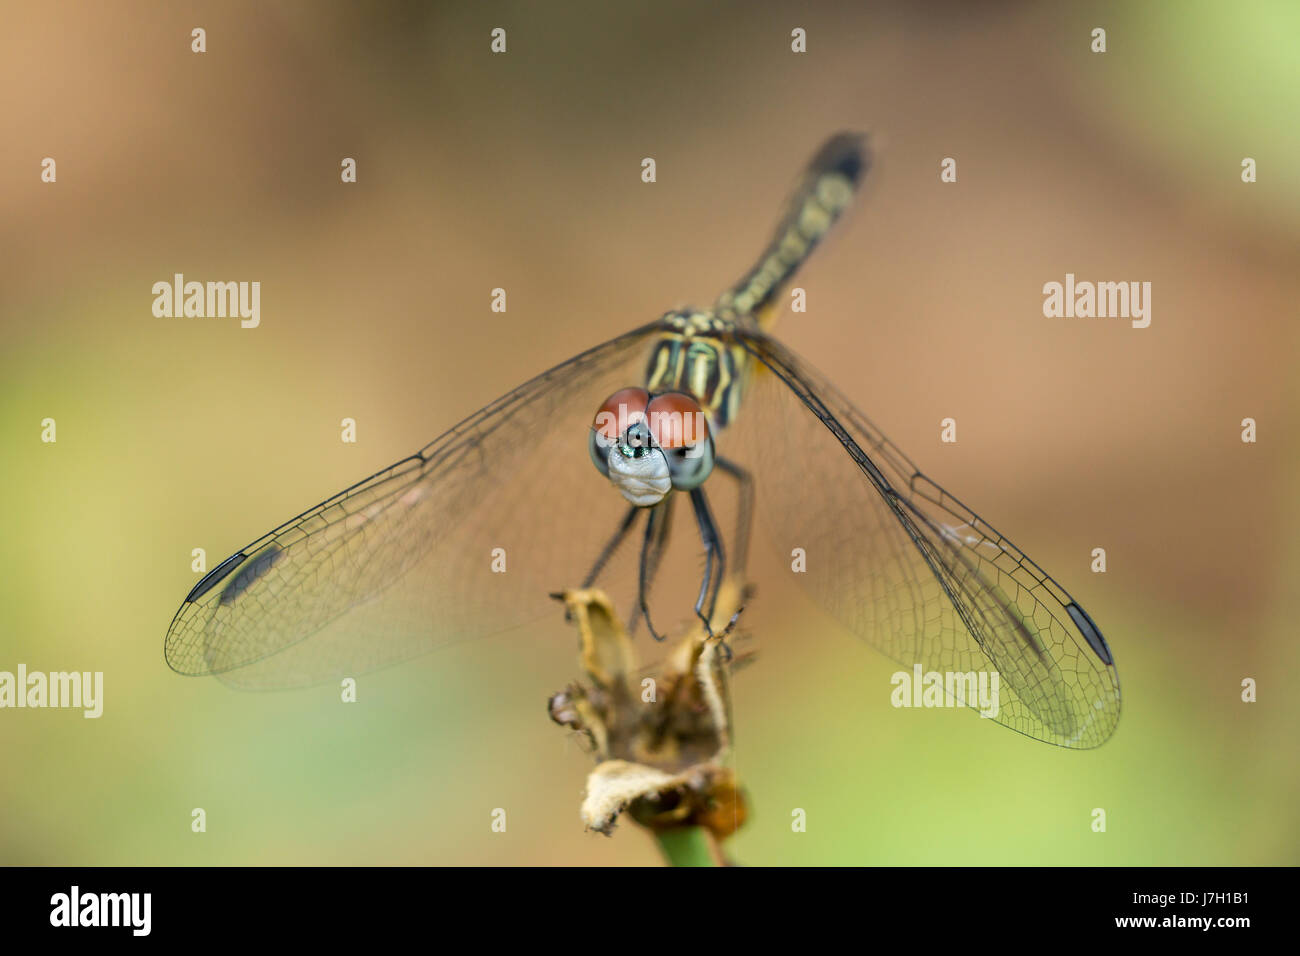 Dragonfly in the garden Stock Photo